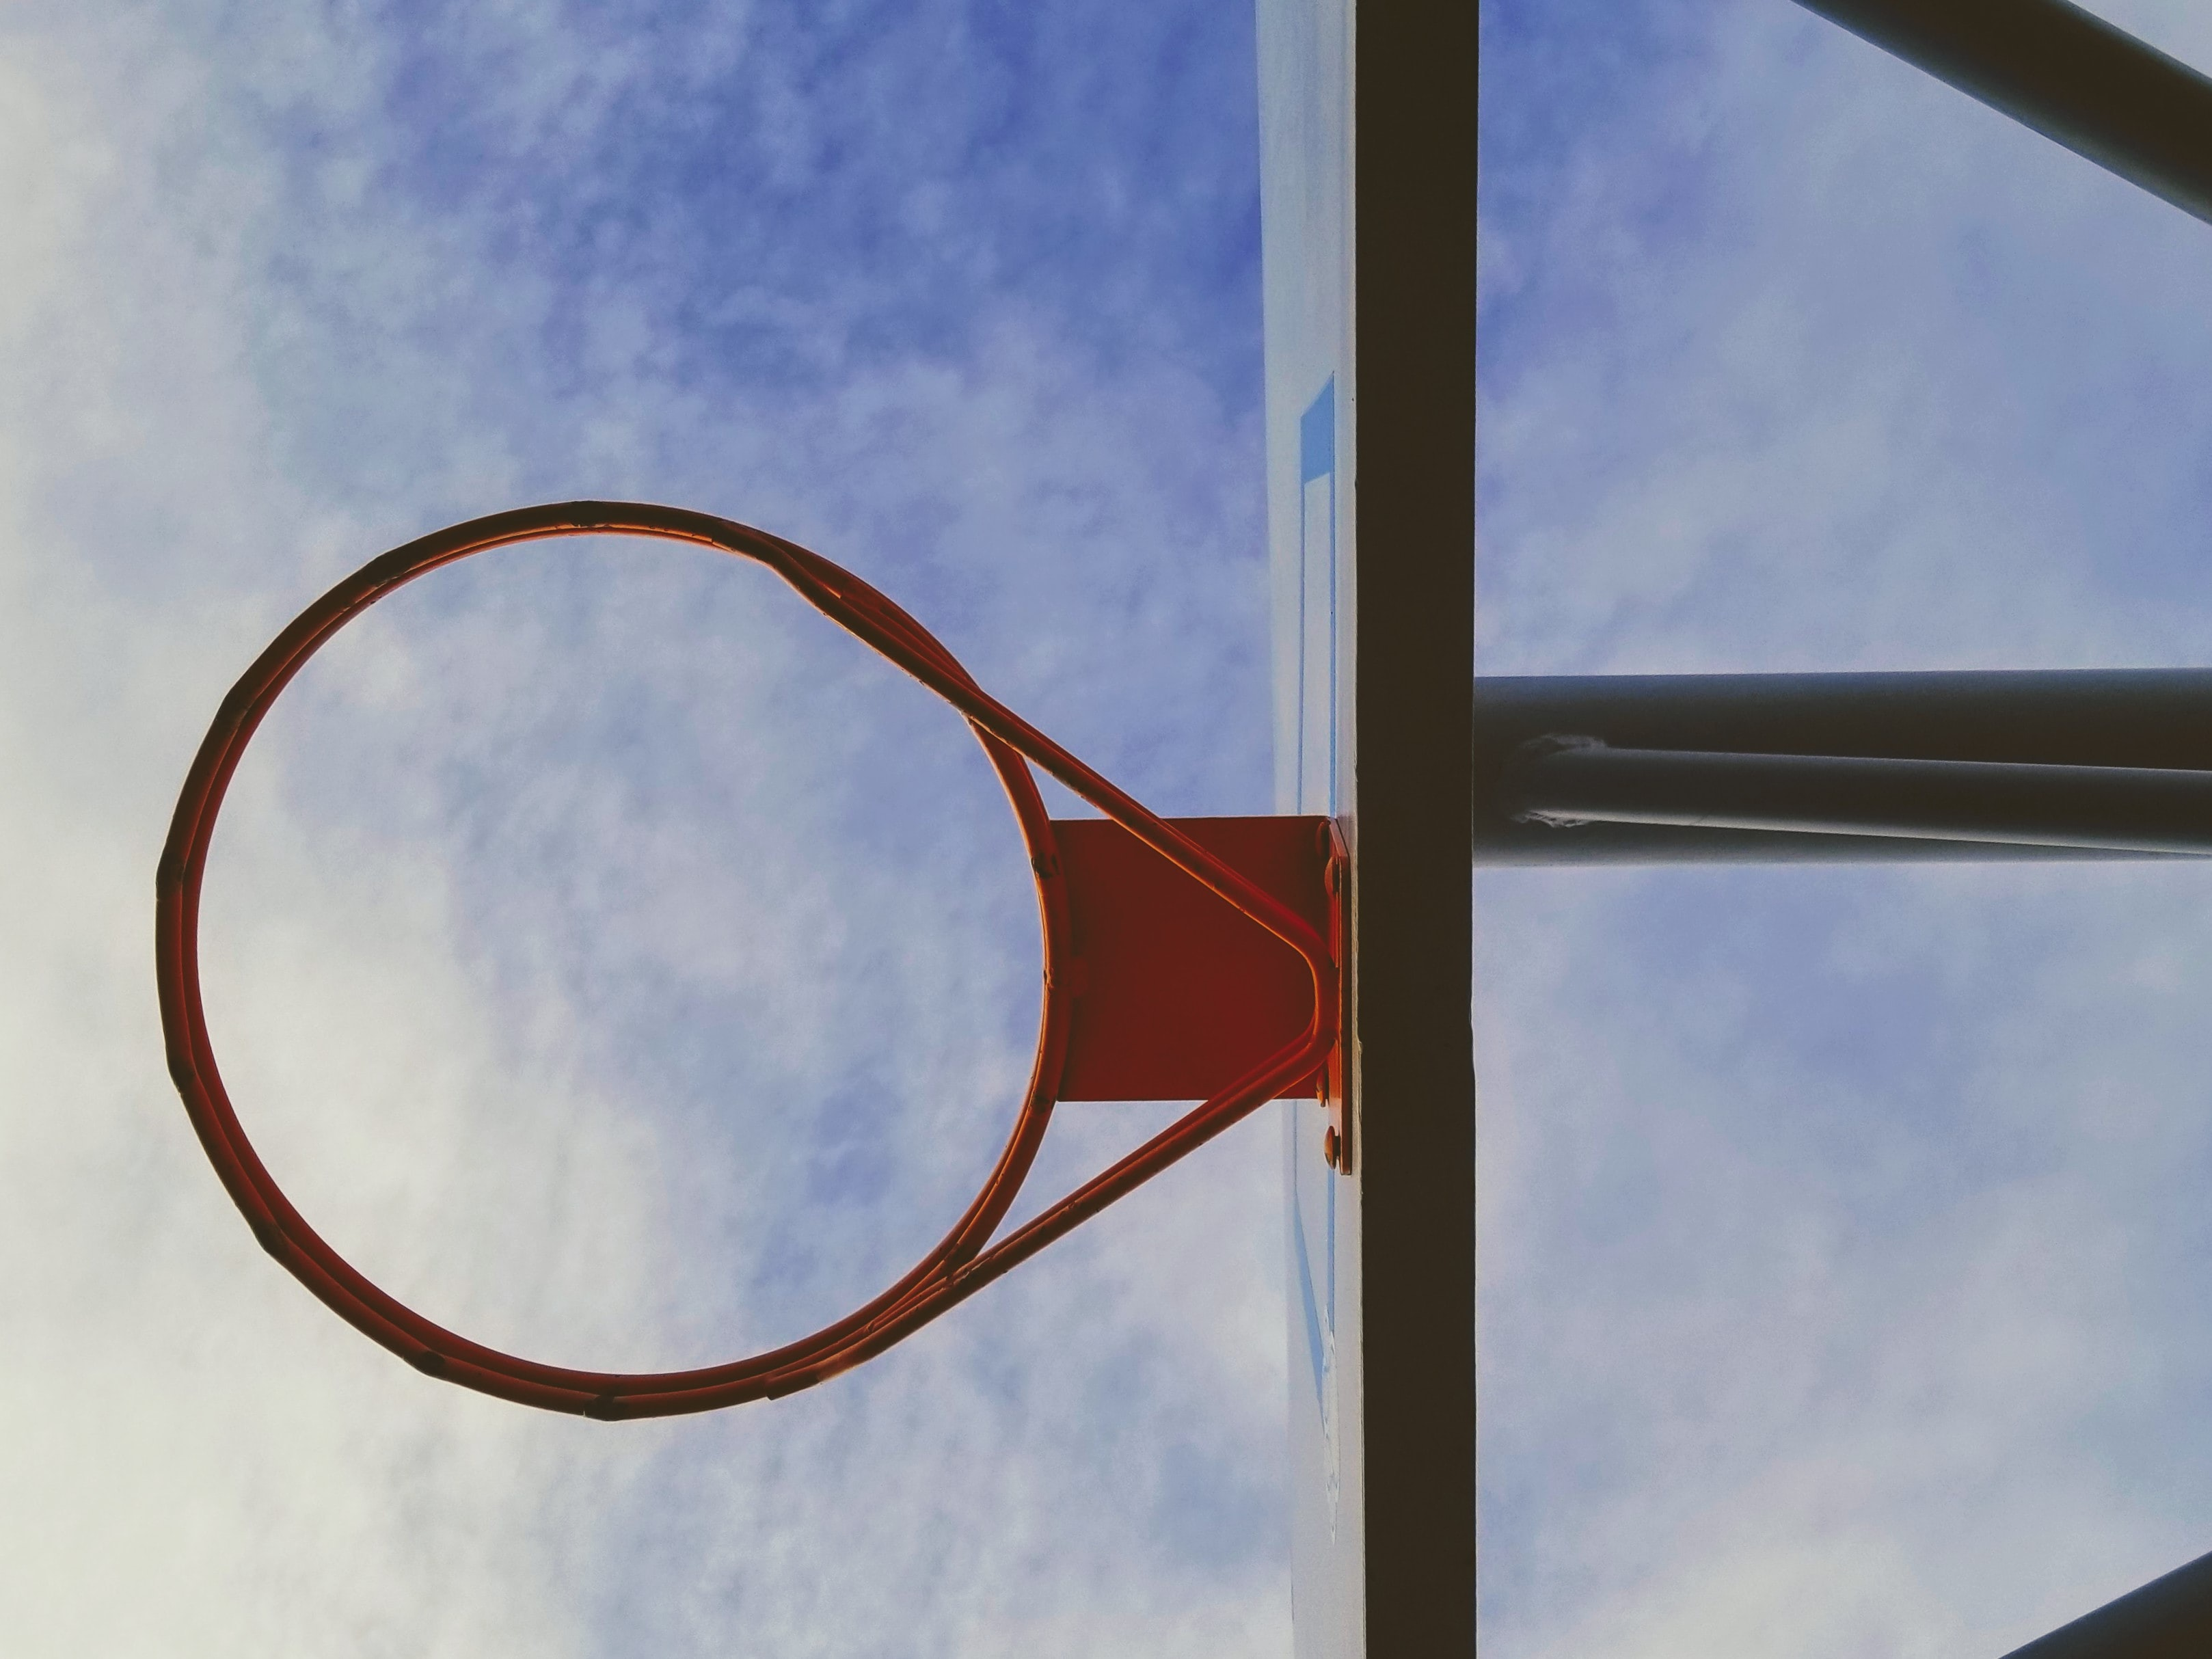 orange and black basketball hoop under white and blue sky